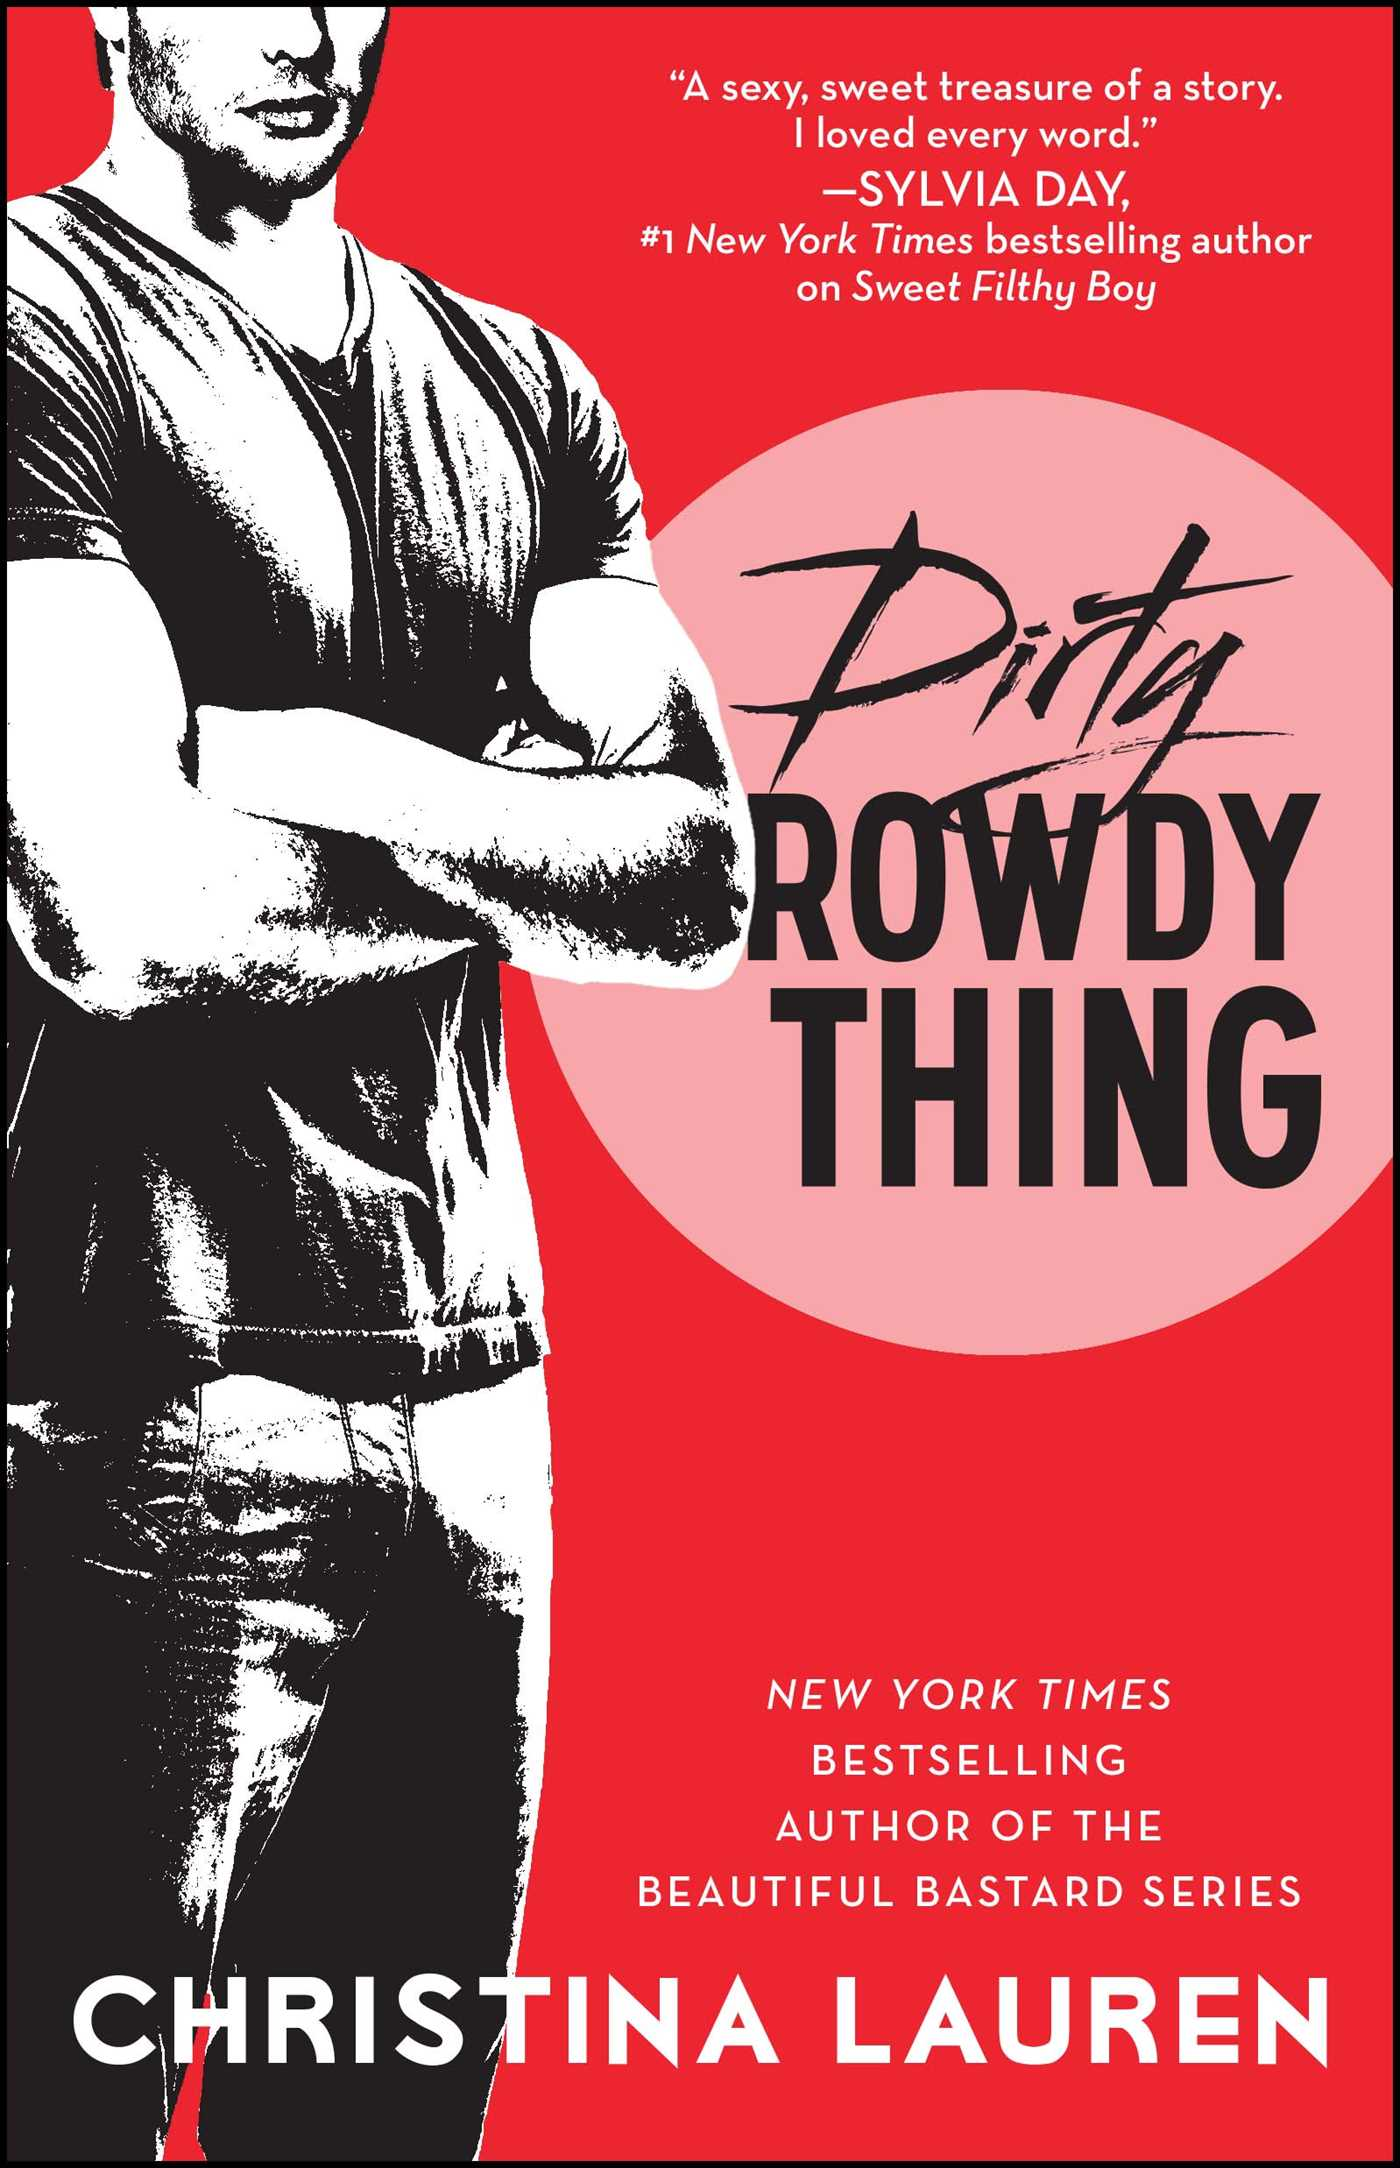 Image result for christina lauren dirty rowdy thing book cover